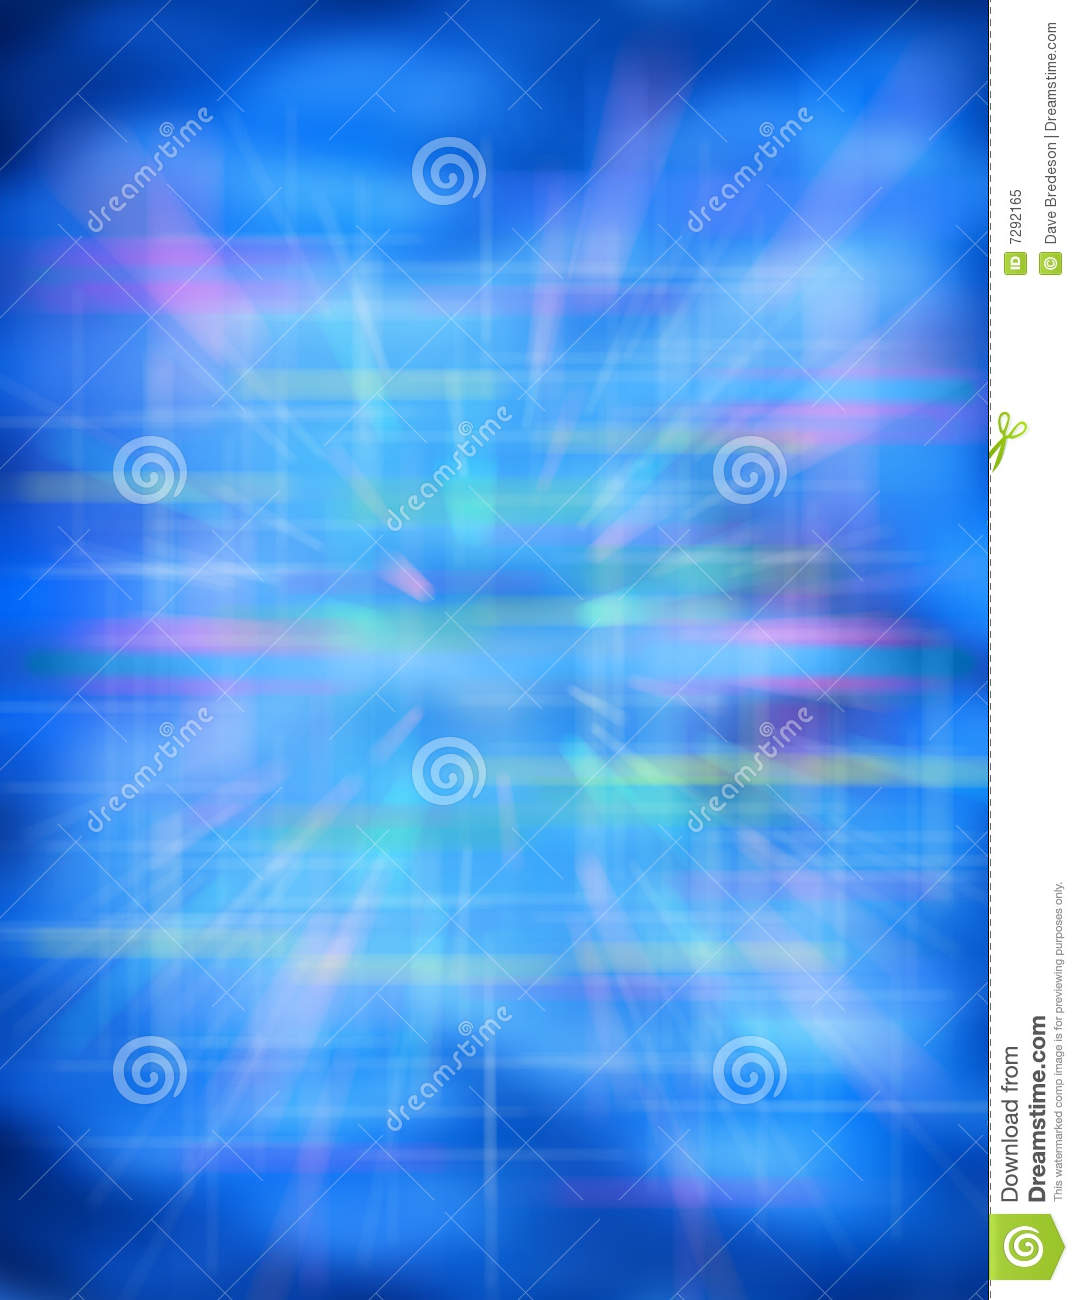 Futuristic Blue Abstract Background